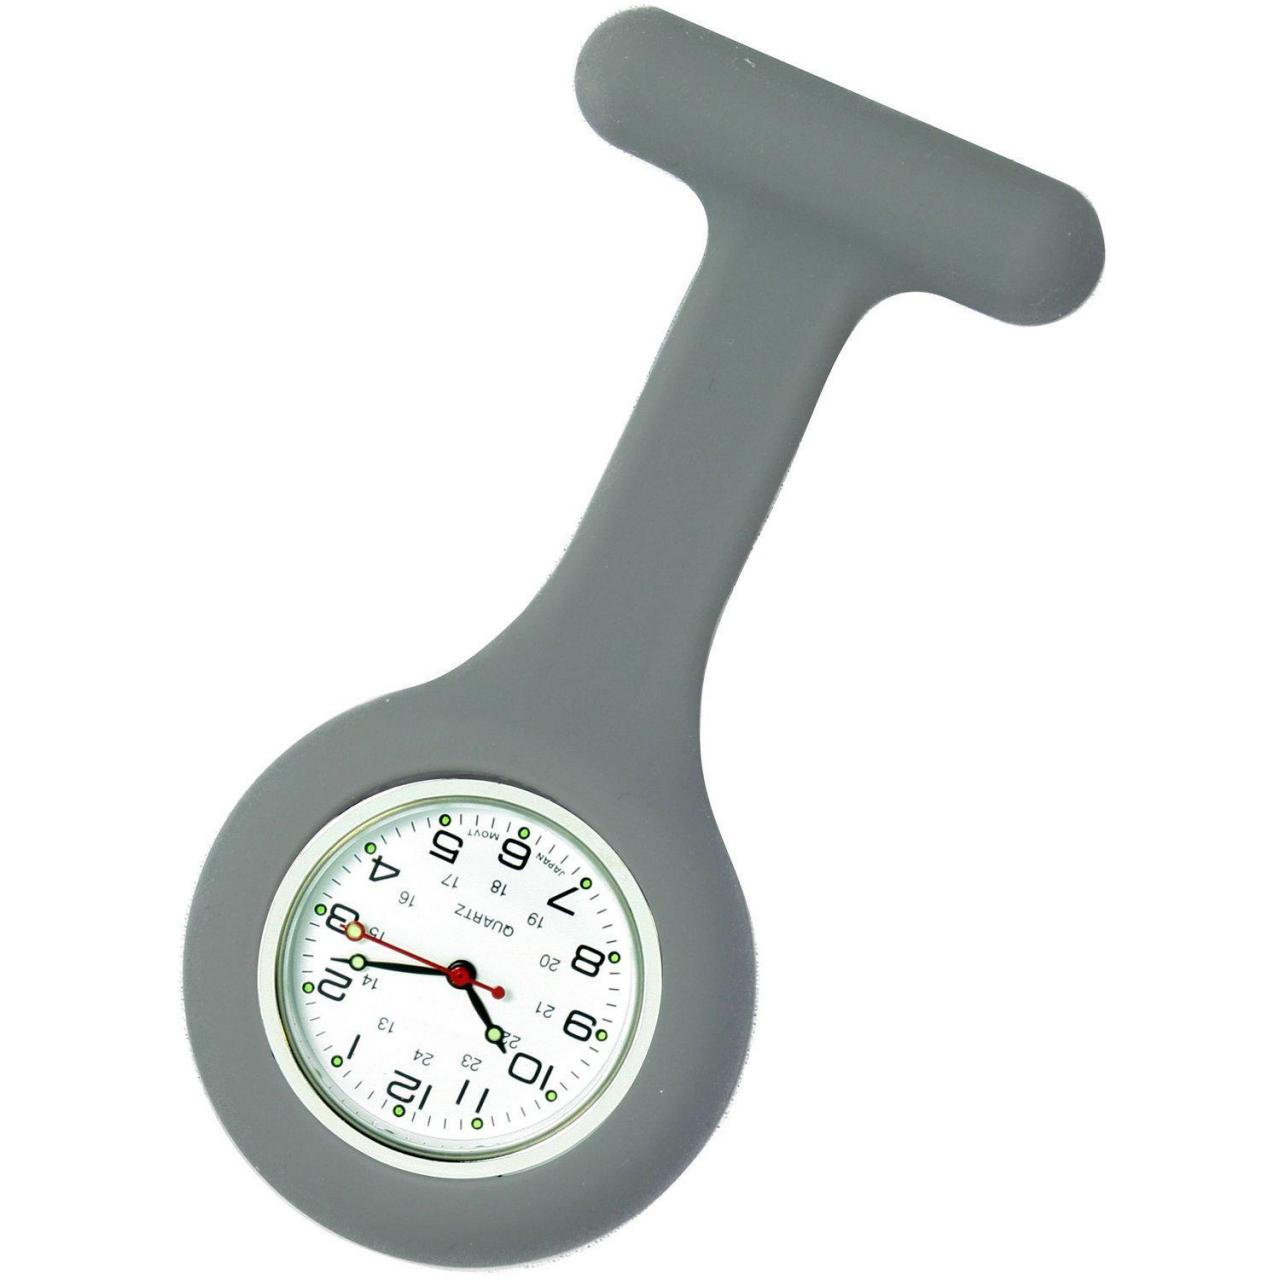 Buy cheap Unisex Nurses Lapel Watch Silicone (Infection Control) Gray from wholesalers